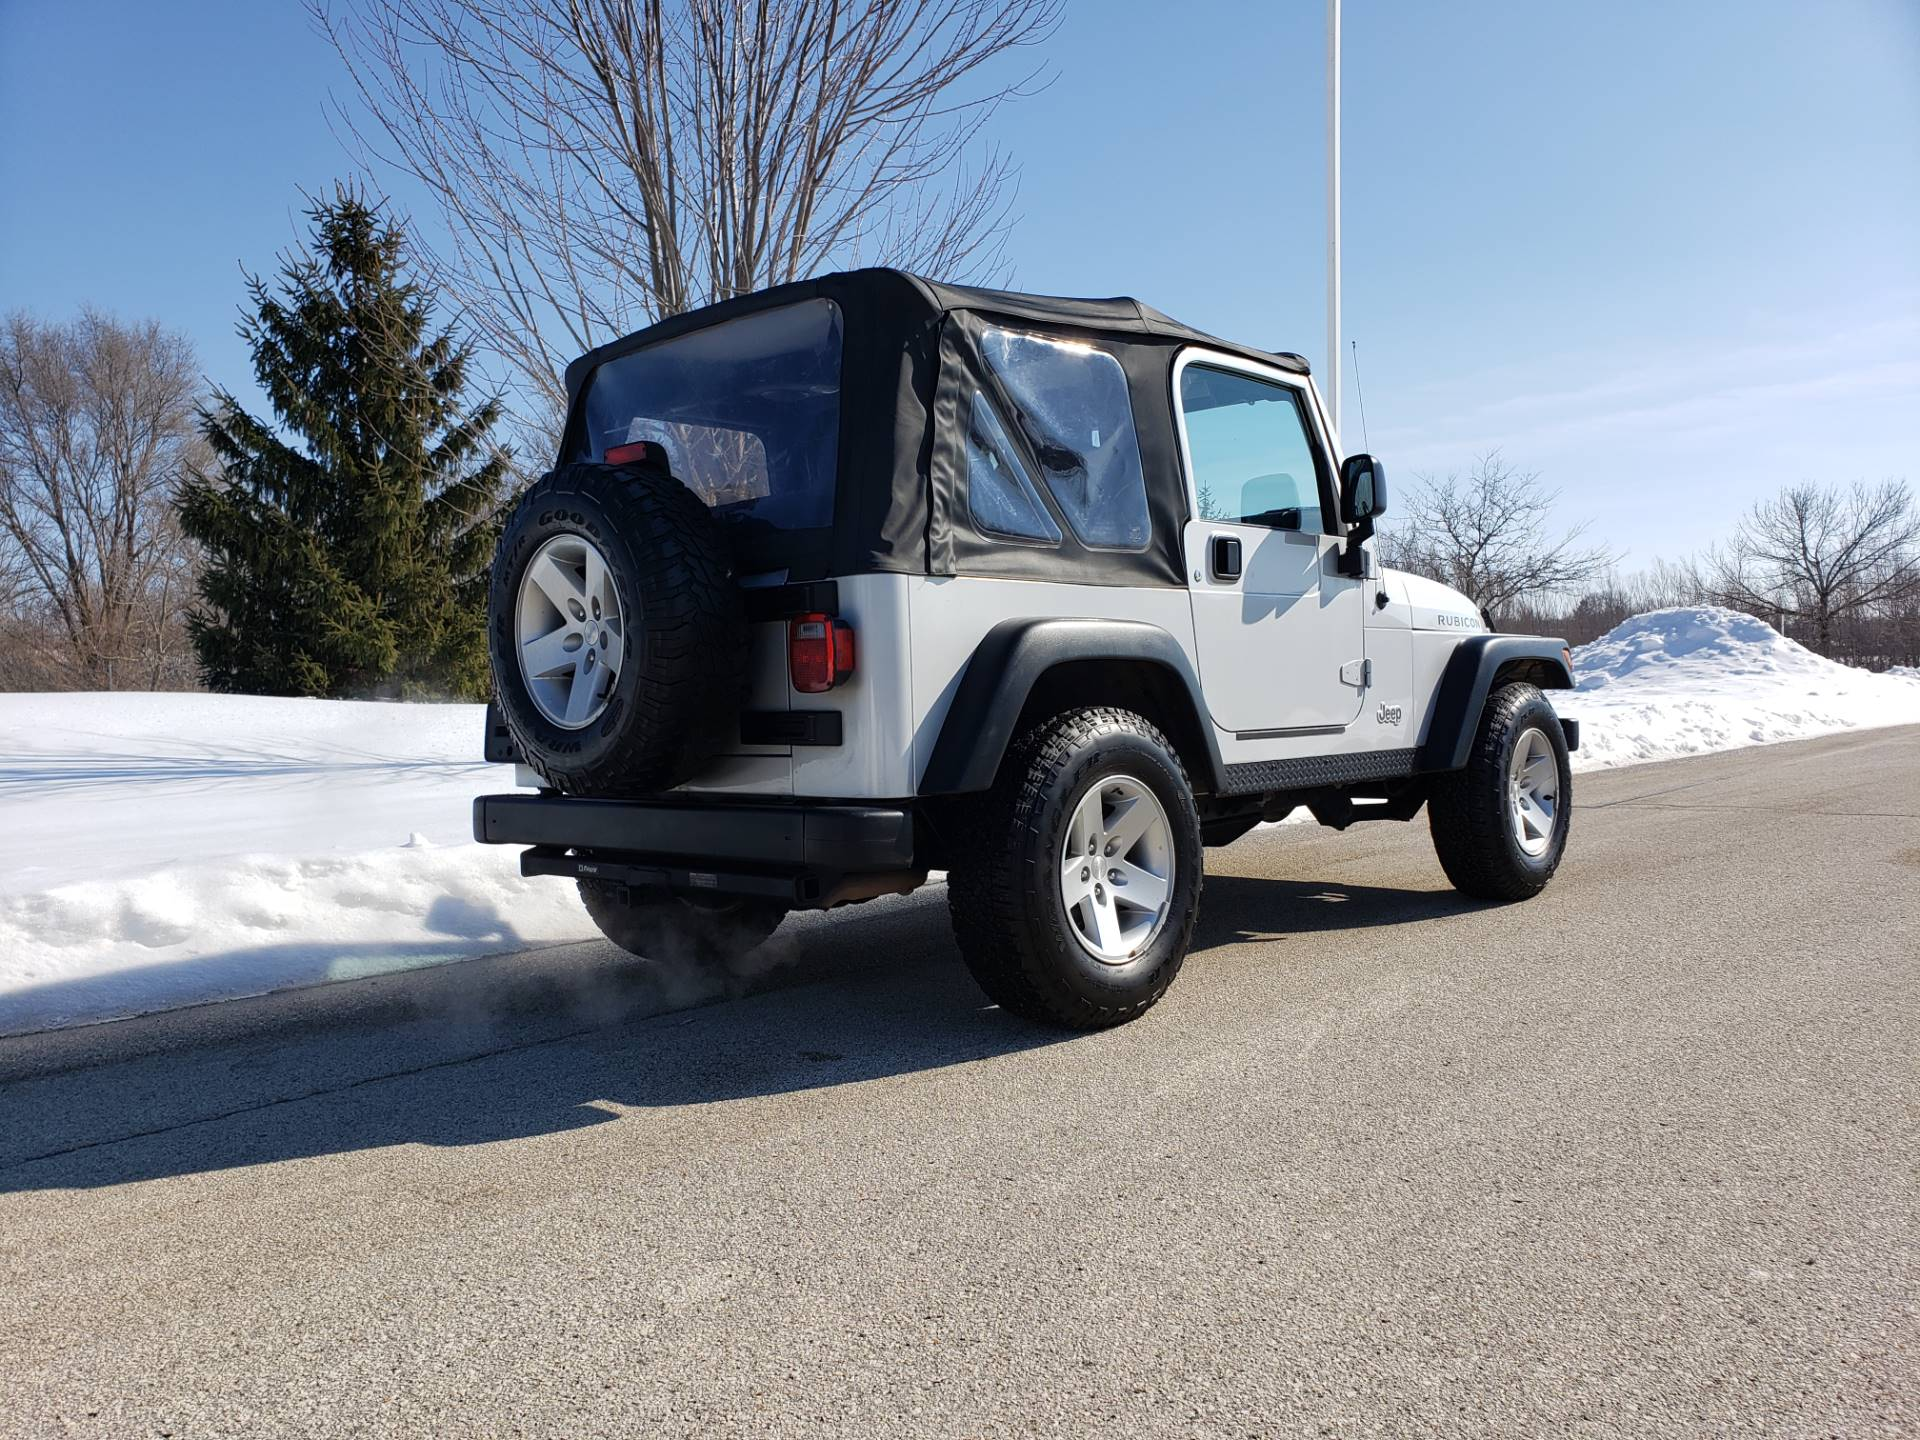 2005 Jeep Wrangler Rubicon in Big Bend, Wisconsin - Photo 4